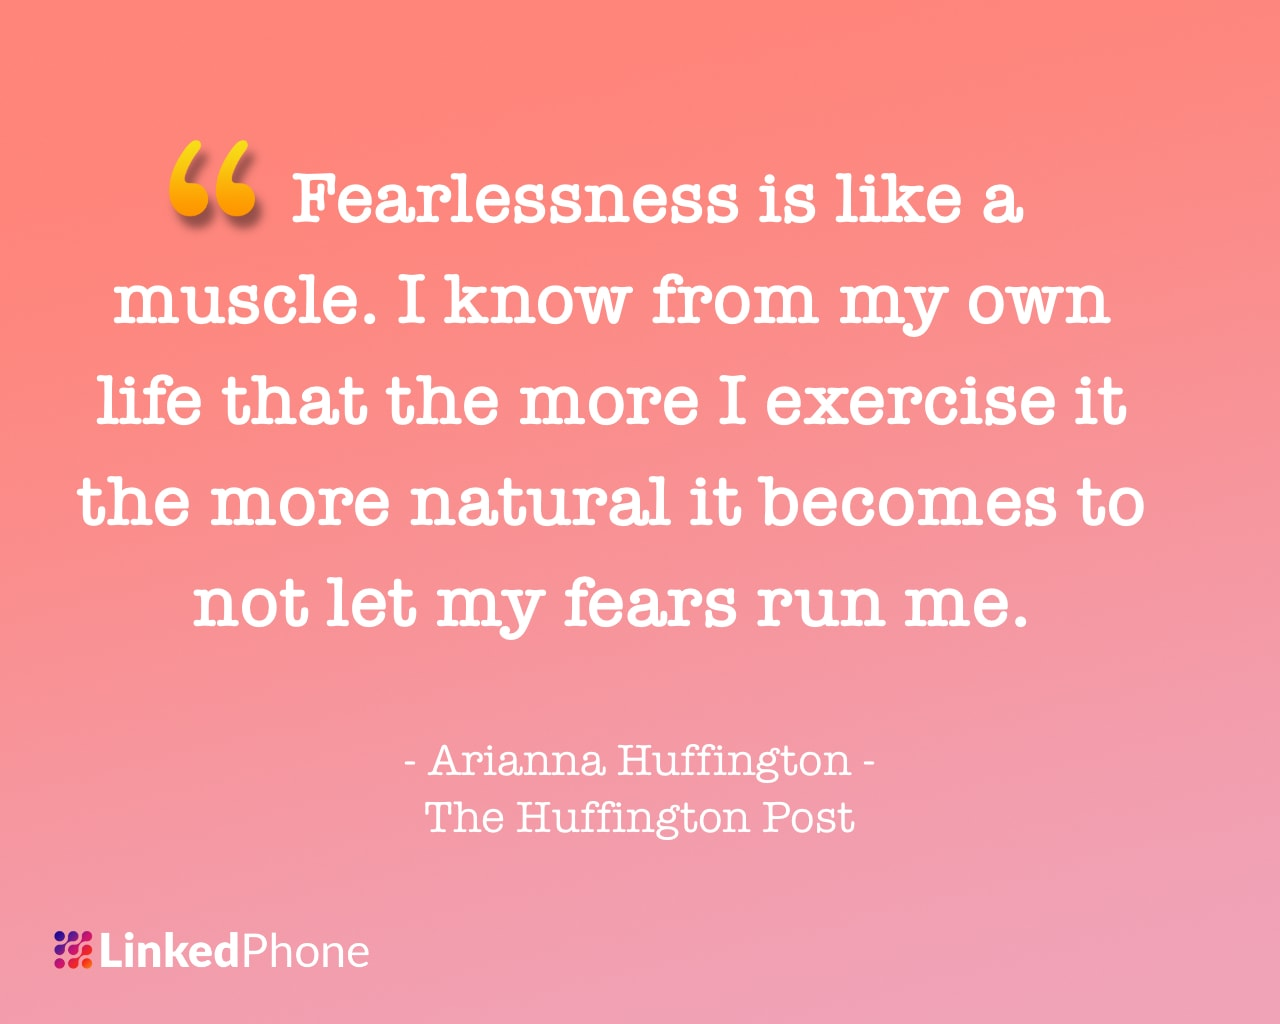 Arianna Huffington - Motivational Inspirational Quotes and Sayings